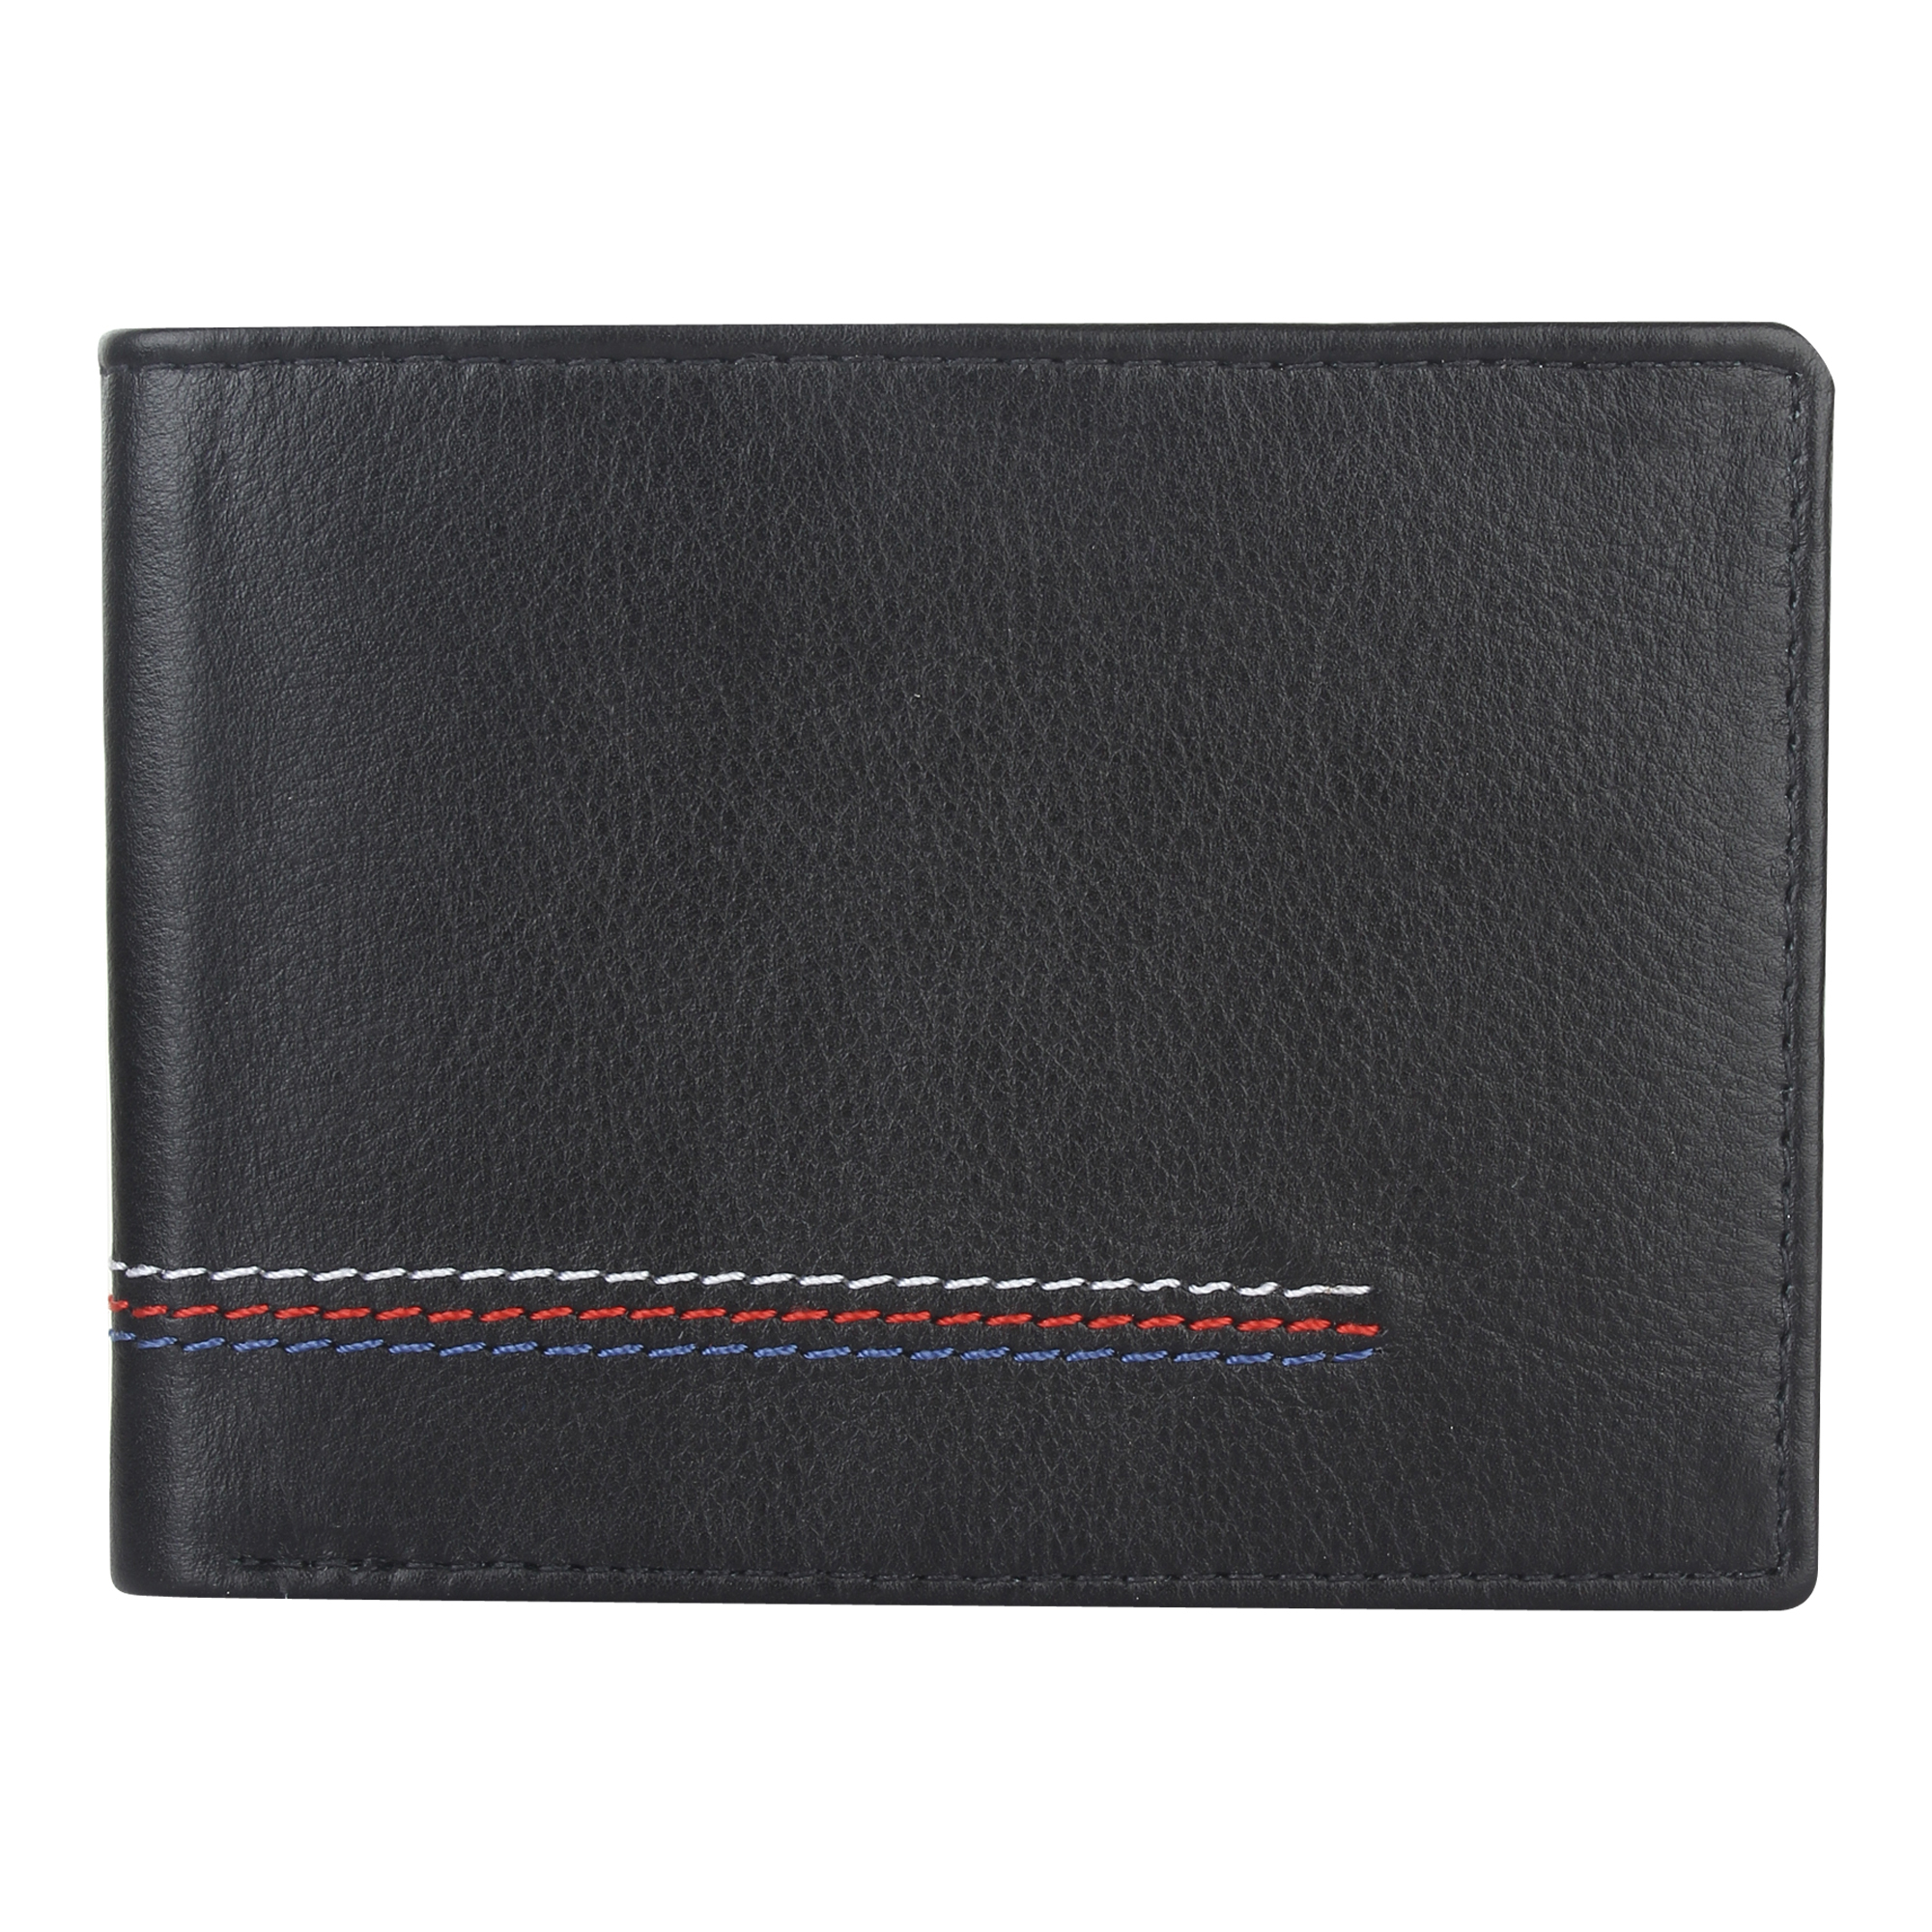 Leather Wallets Manufacturers in Idaho, Leather Wallets Suppliers in Idaho, Leather Wallets Wholesalers in Idaho, Leather Wallets Traders in Idaho, custom leather wallet manufacturers in Idaho, Leathe